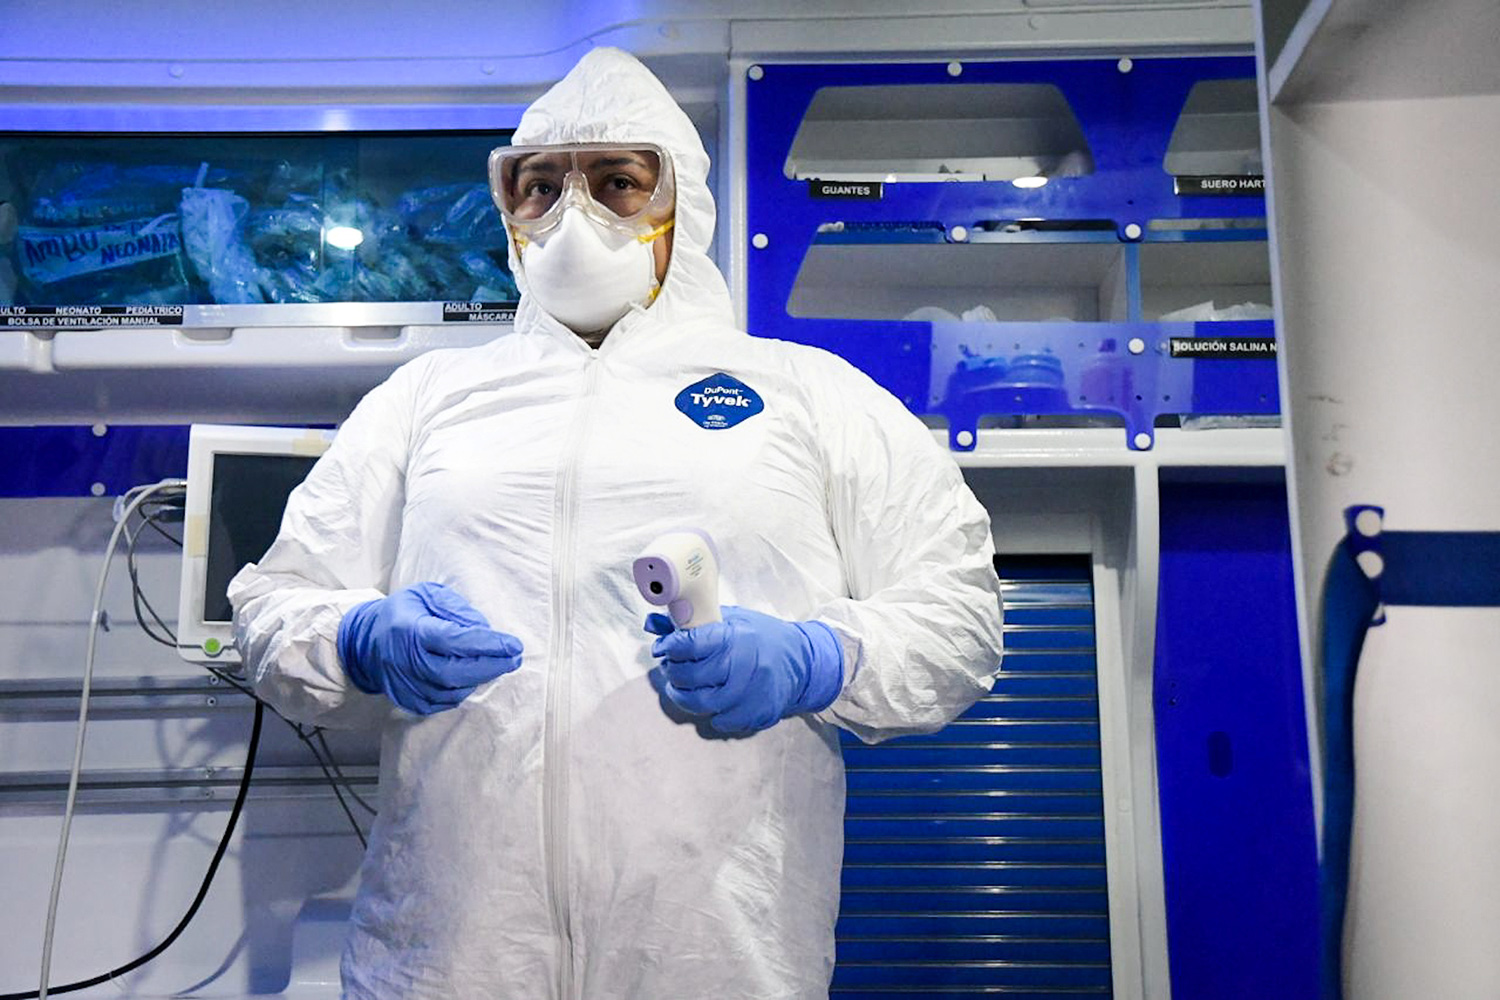 Image shows a worker fully garbed in protective gear head to toe holding a thermometer. Everything in the picture strikingly white or blue.